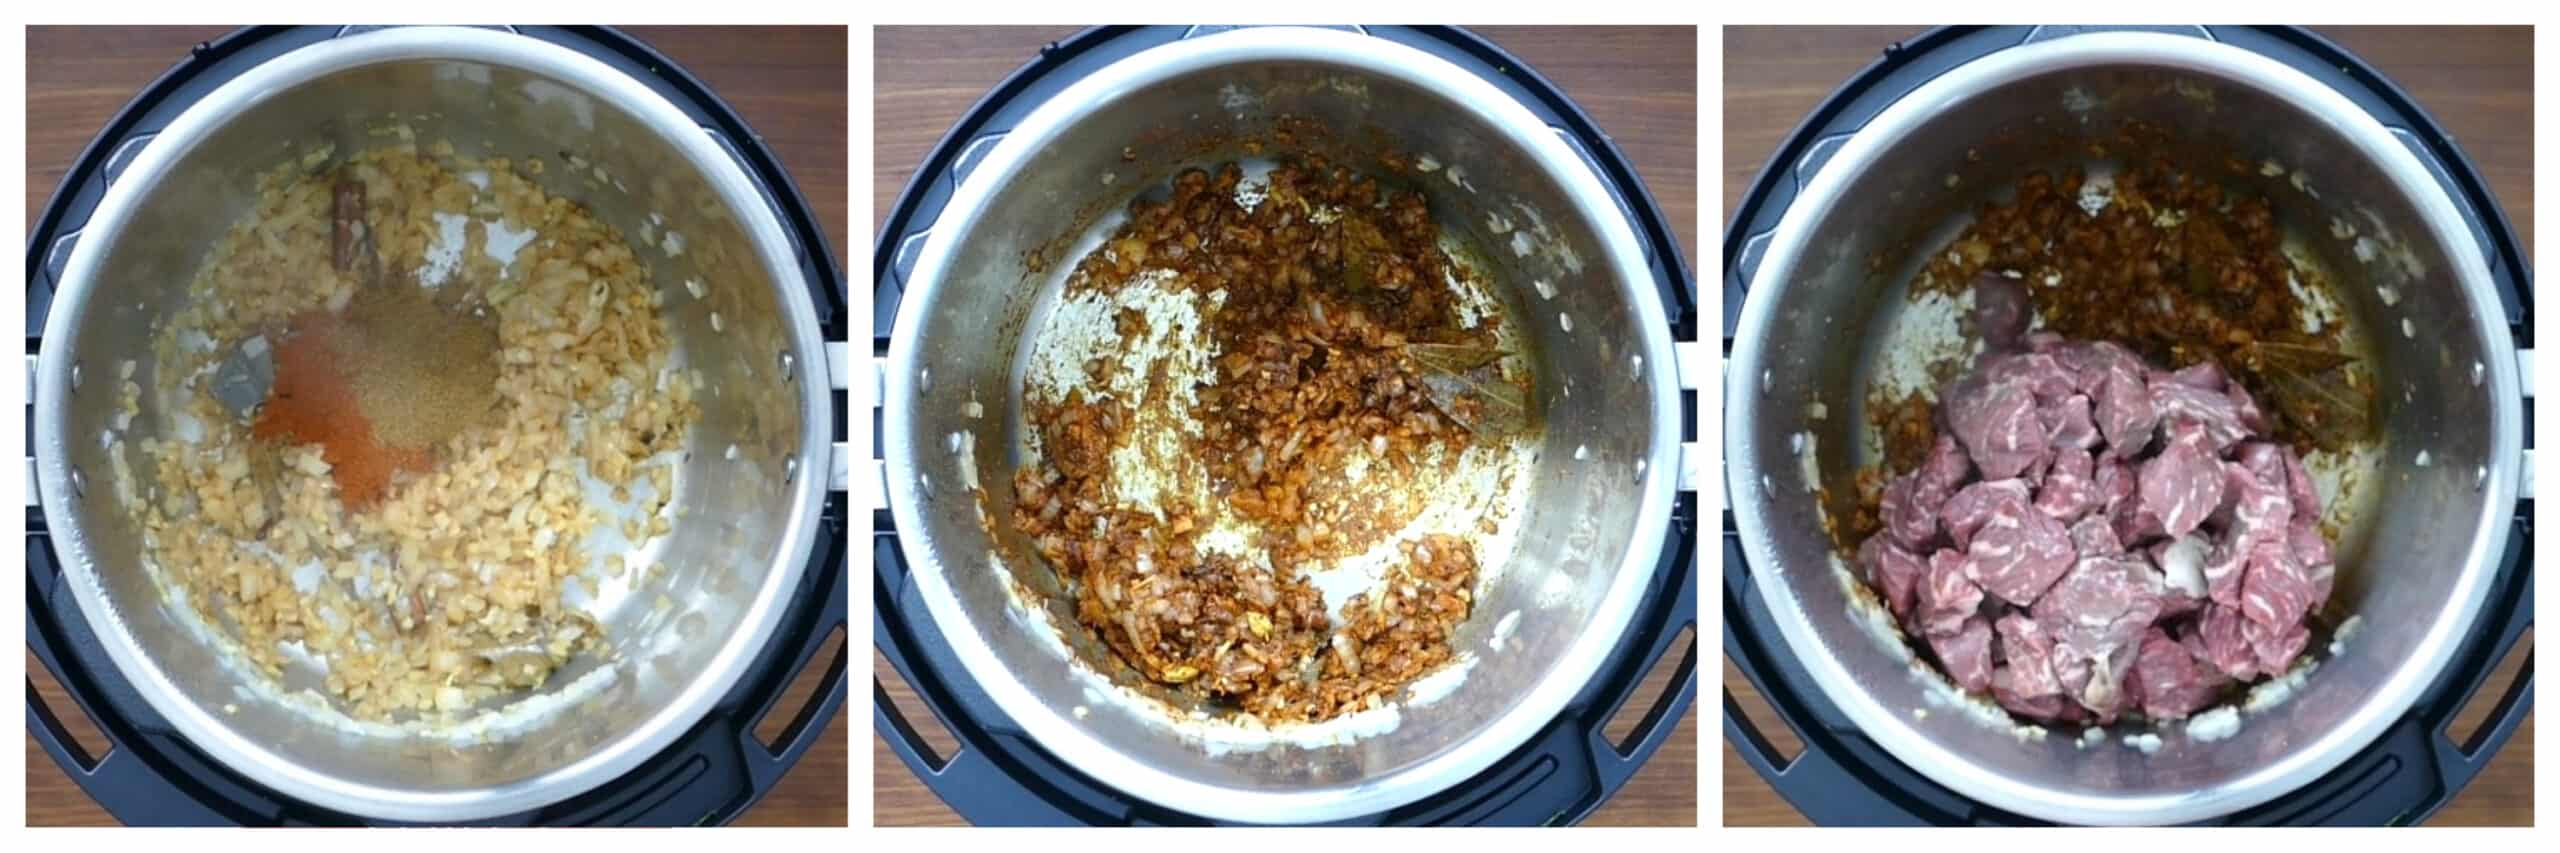 Instant Pot Rogan Josh Instructions collage - spices added, onions and spices stirred, lamb added